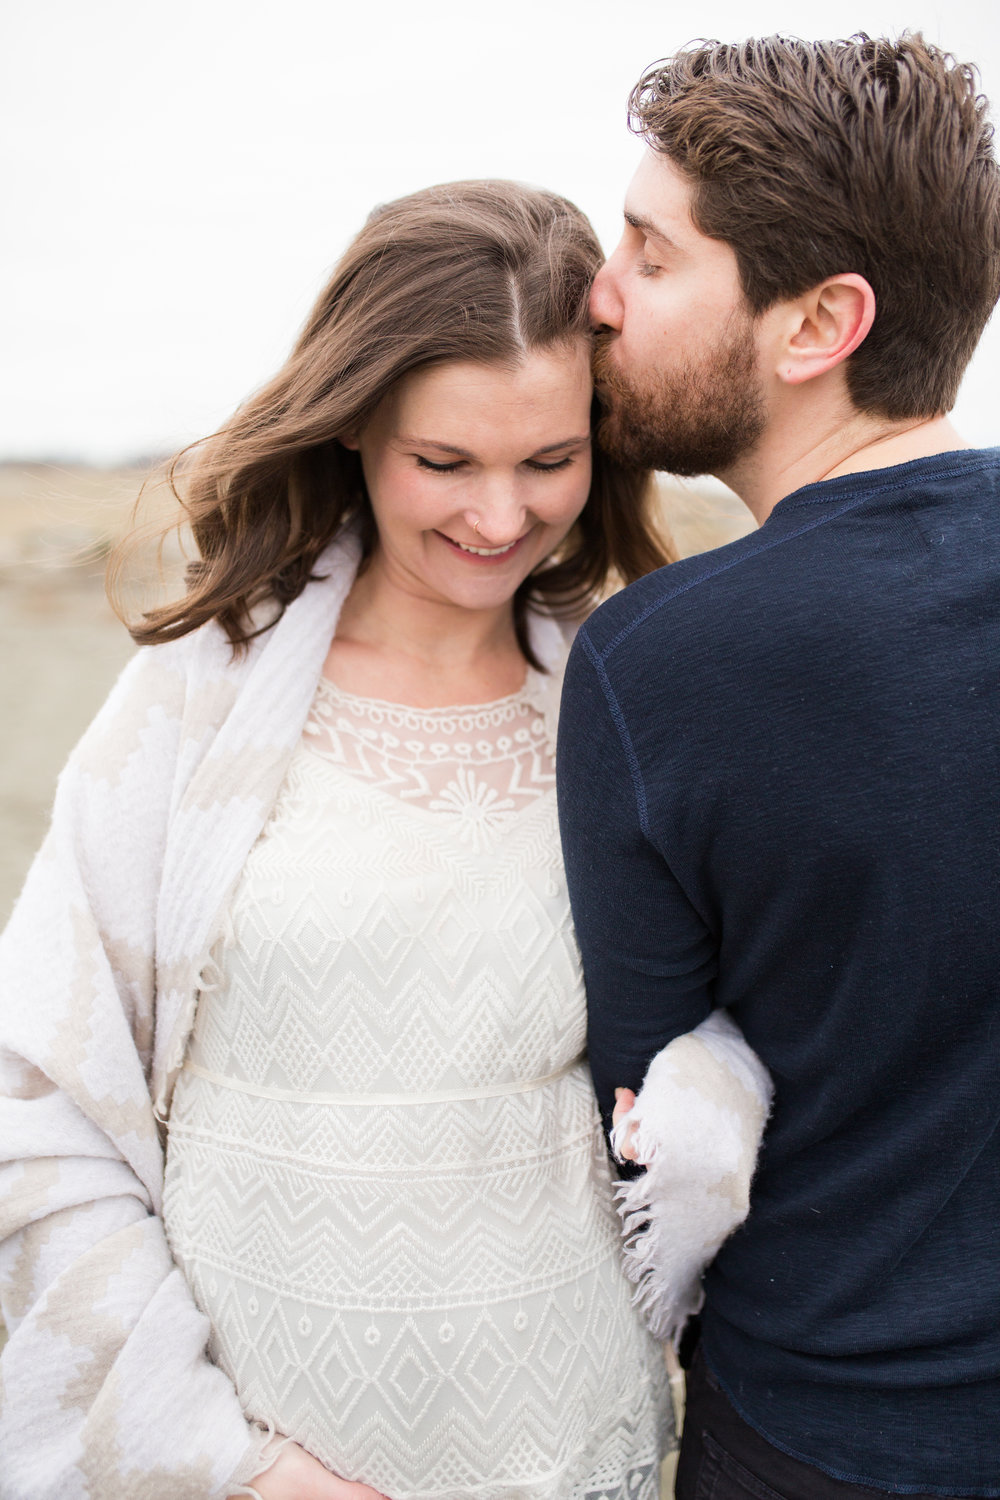 Centennial Beach Maternity Photos-44.jpg